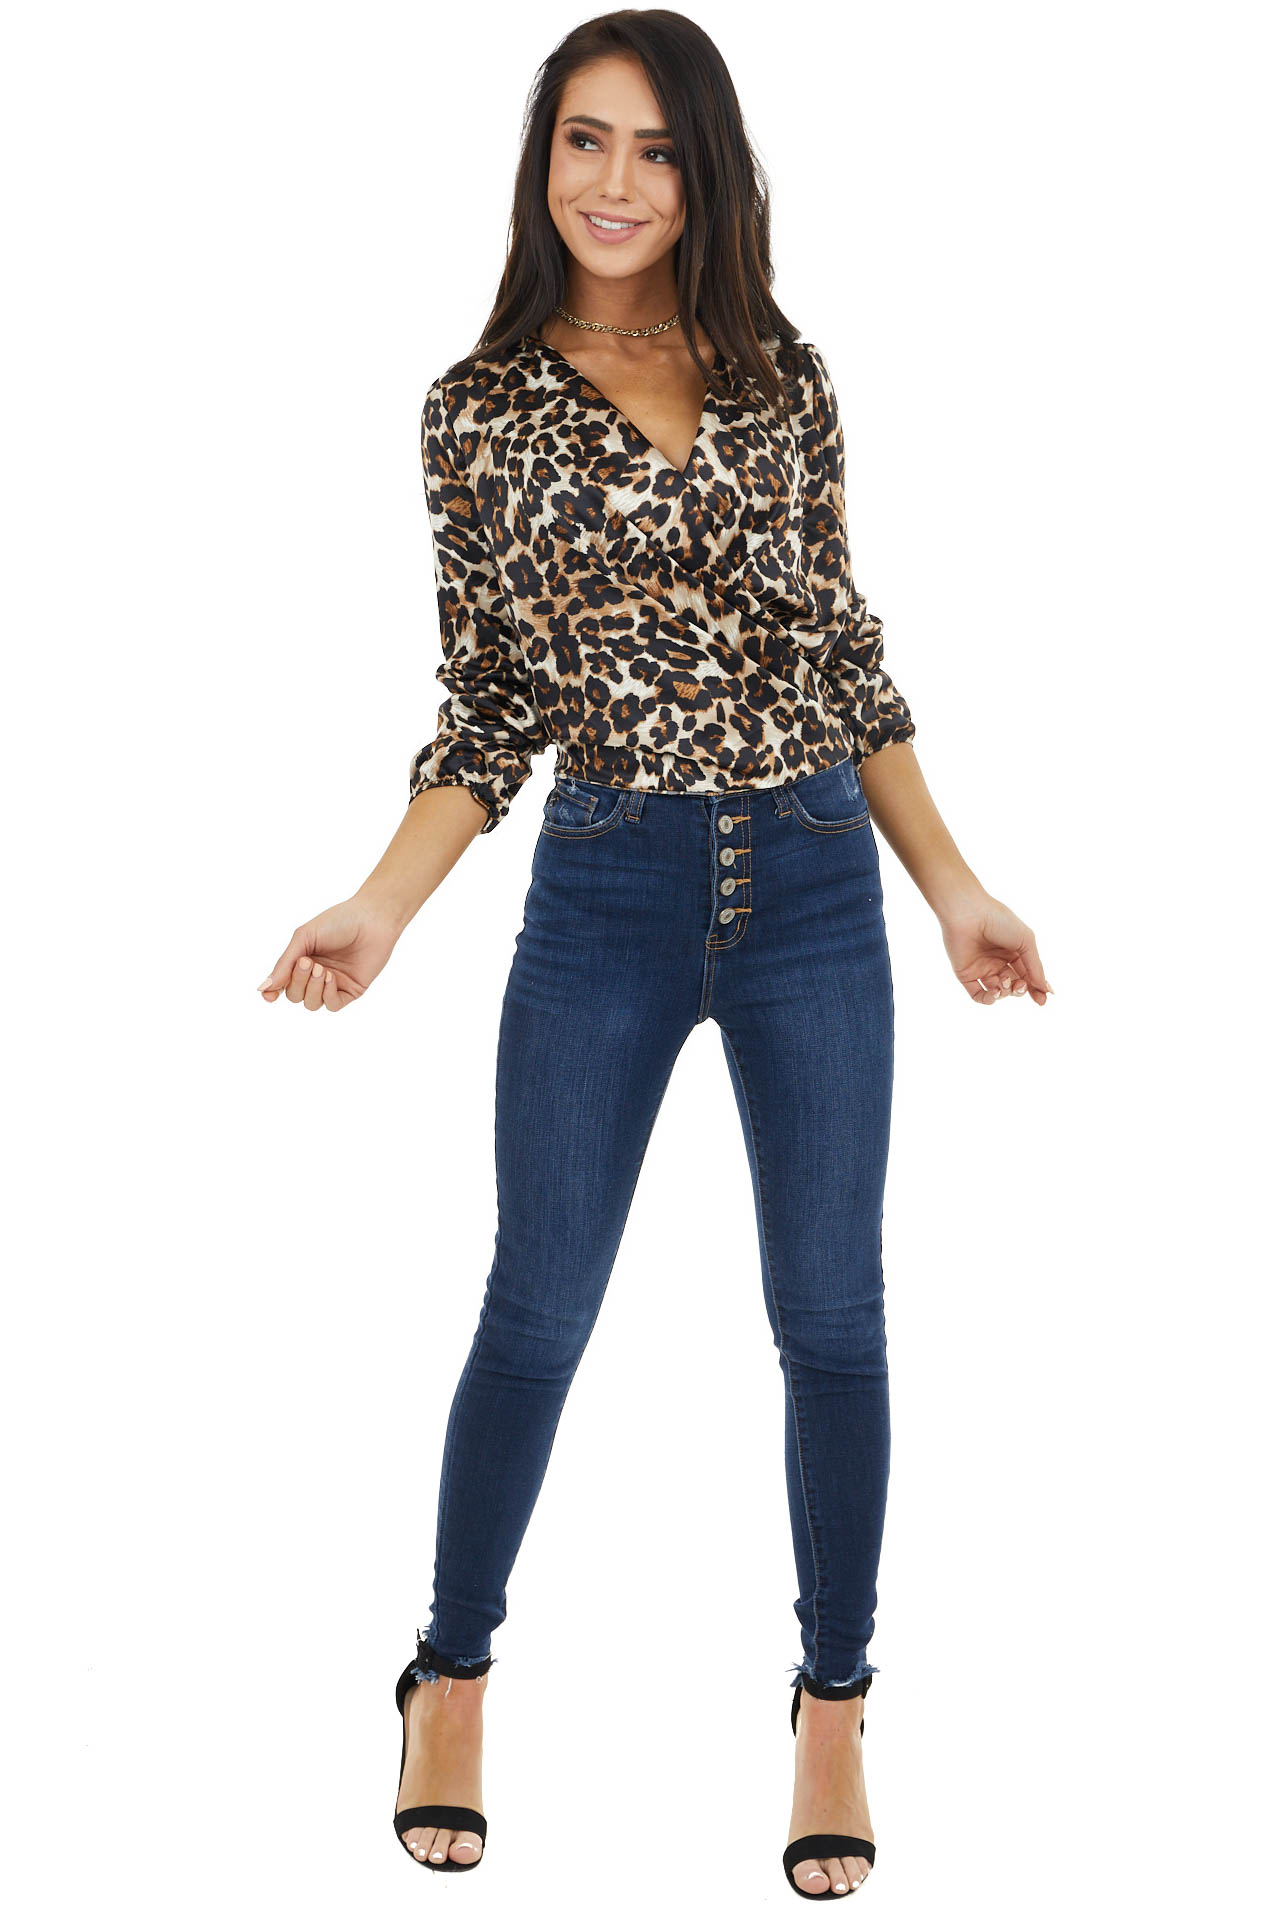 Camel and Latte Leopard Print Silky Surplice Blouse with Tie